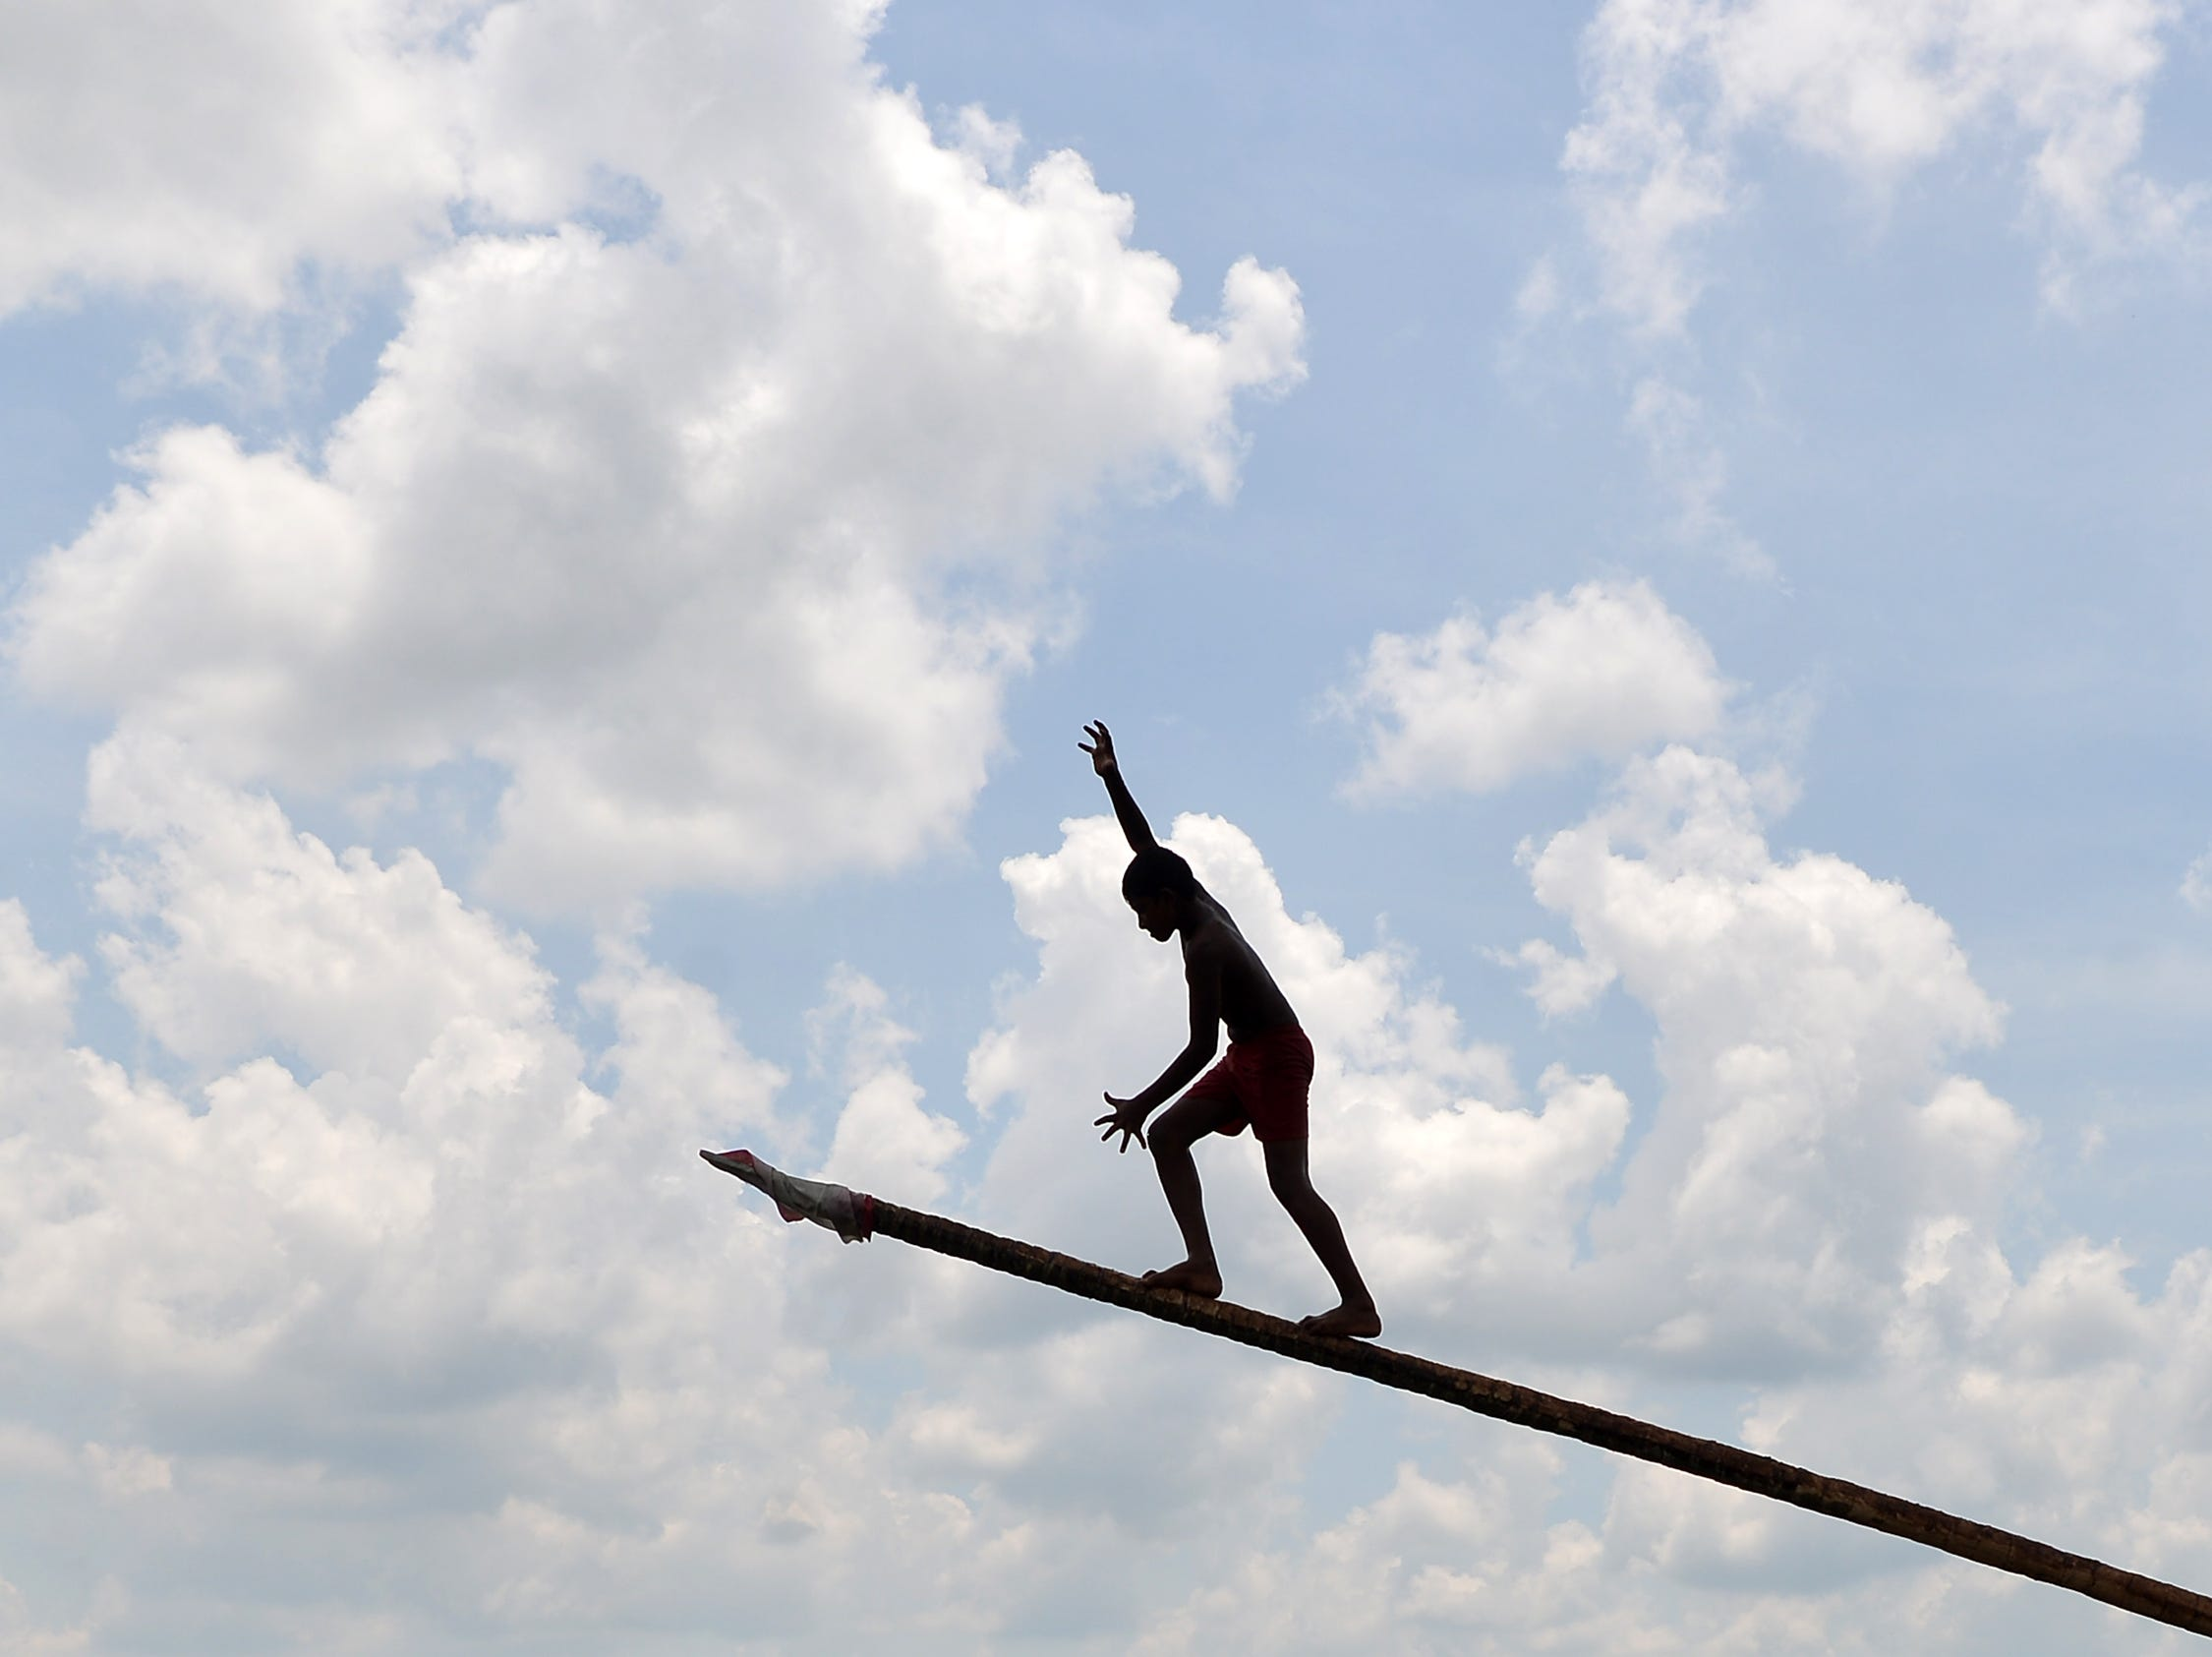 April 22, 2018: A Sri Lankan youth climbs a pole during a game played as part of the Sinhala and Tamil New Year celebrations in Bandaragama near Colombo. The new year, marked by both the majority Sinhalese and minority Tamil population, fell on April 14.